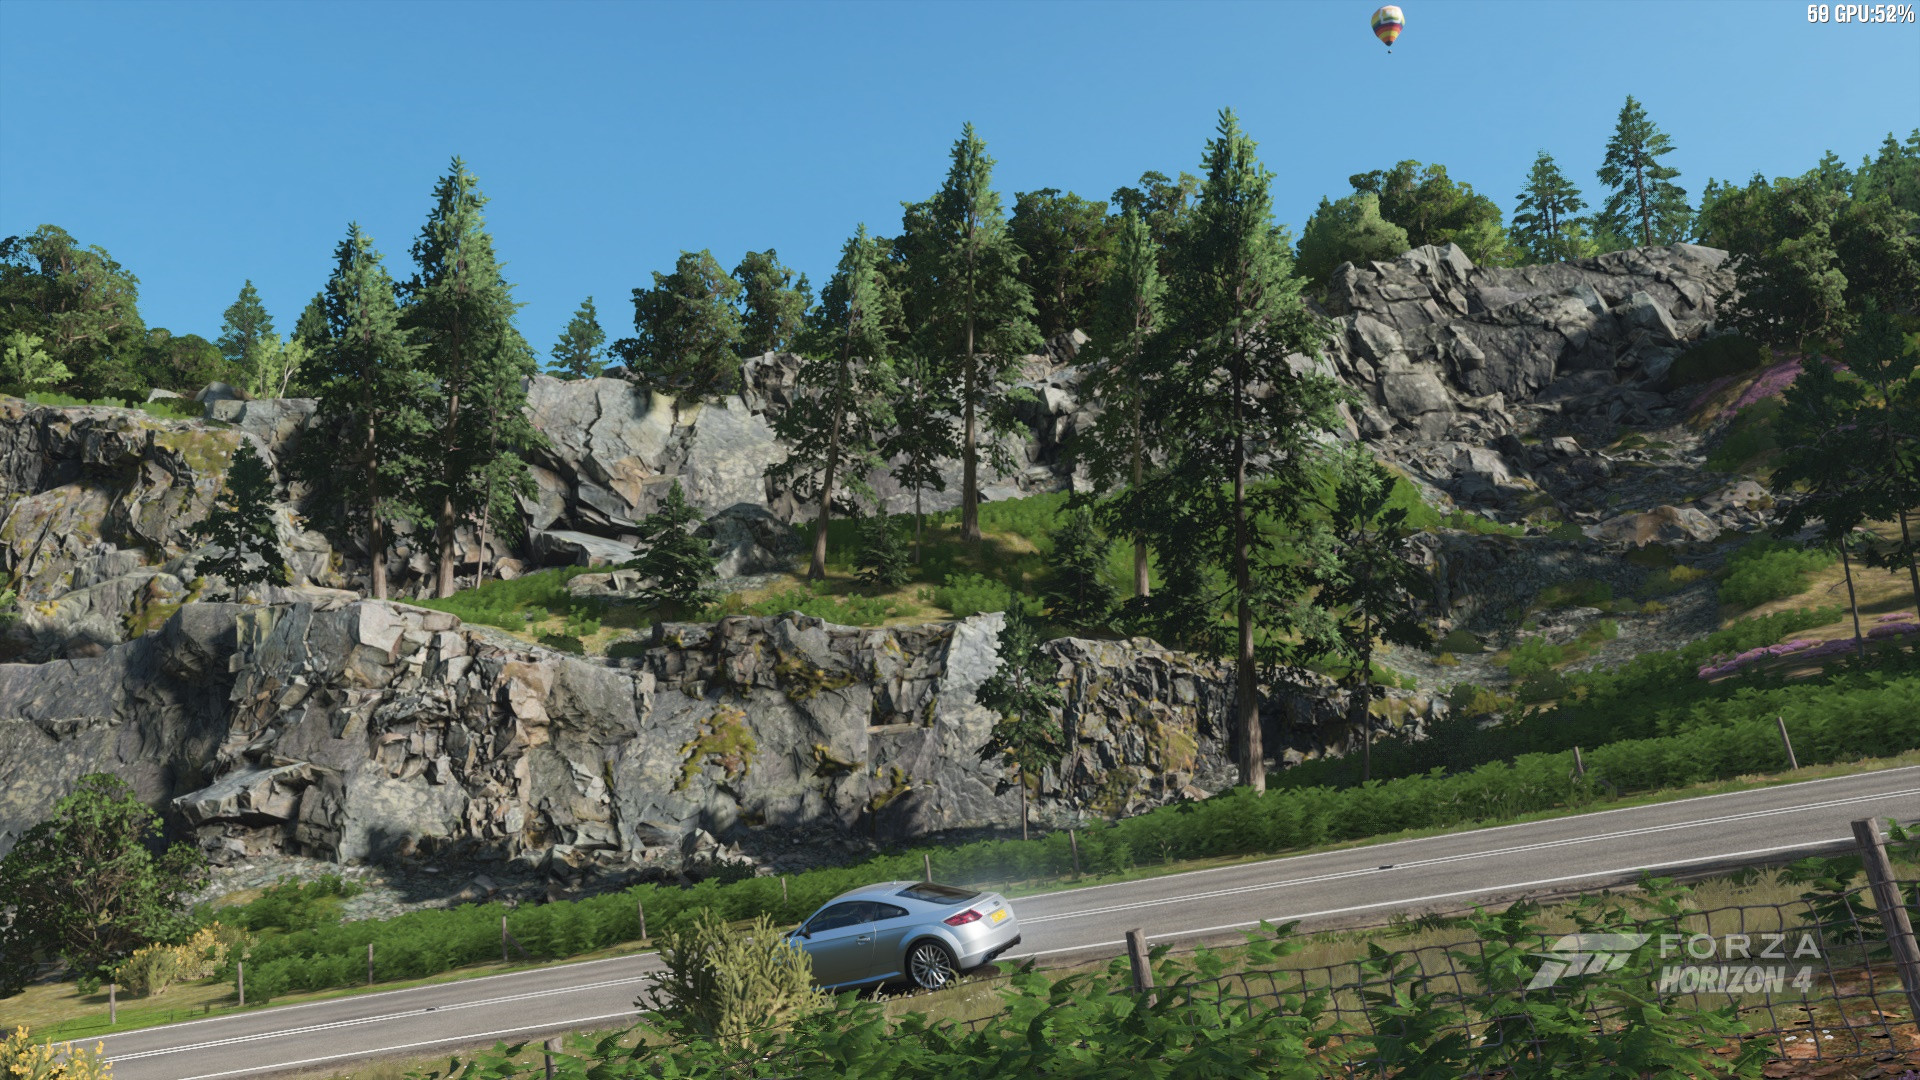 Stefan oprisan forza horizon 4 screenshot 2018 09 16 10 24 16 97